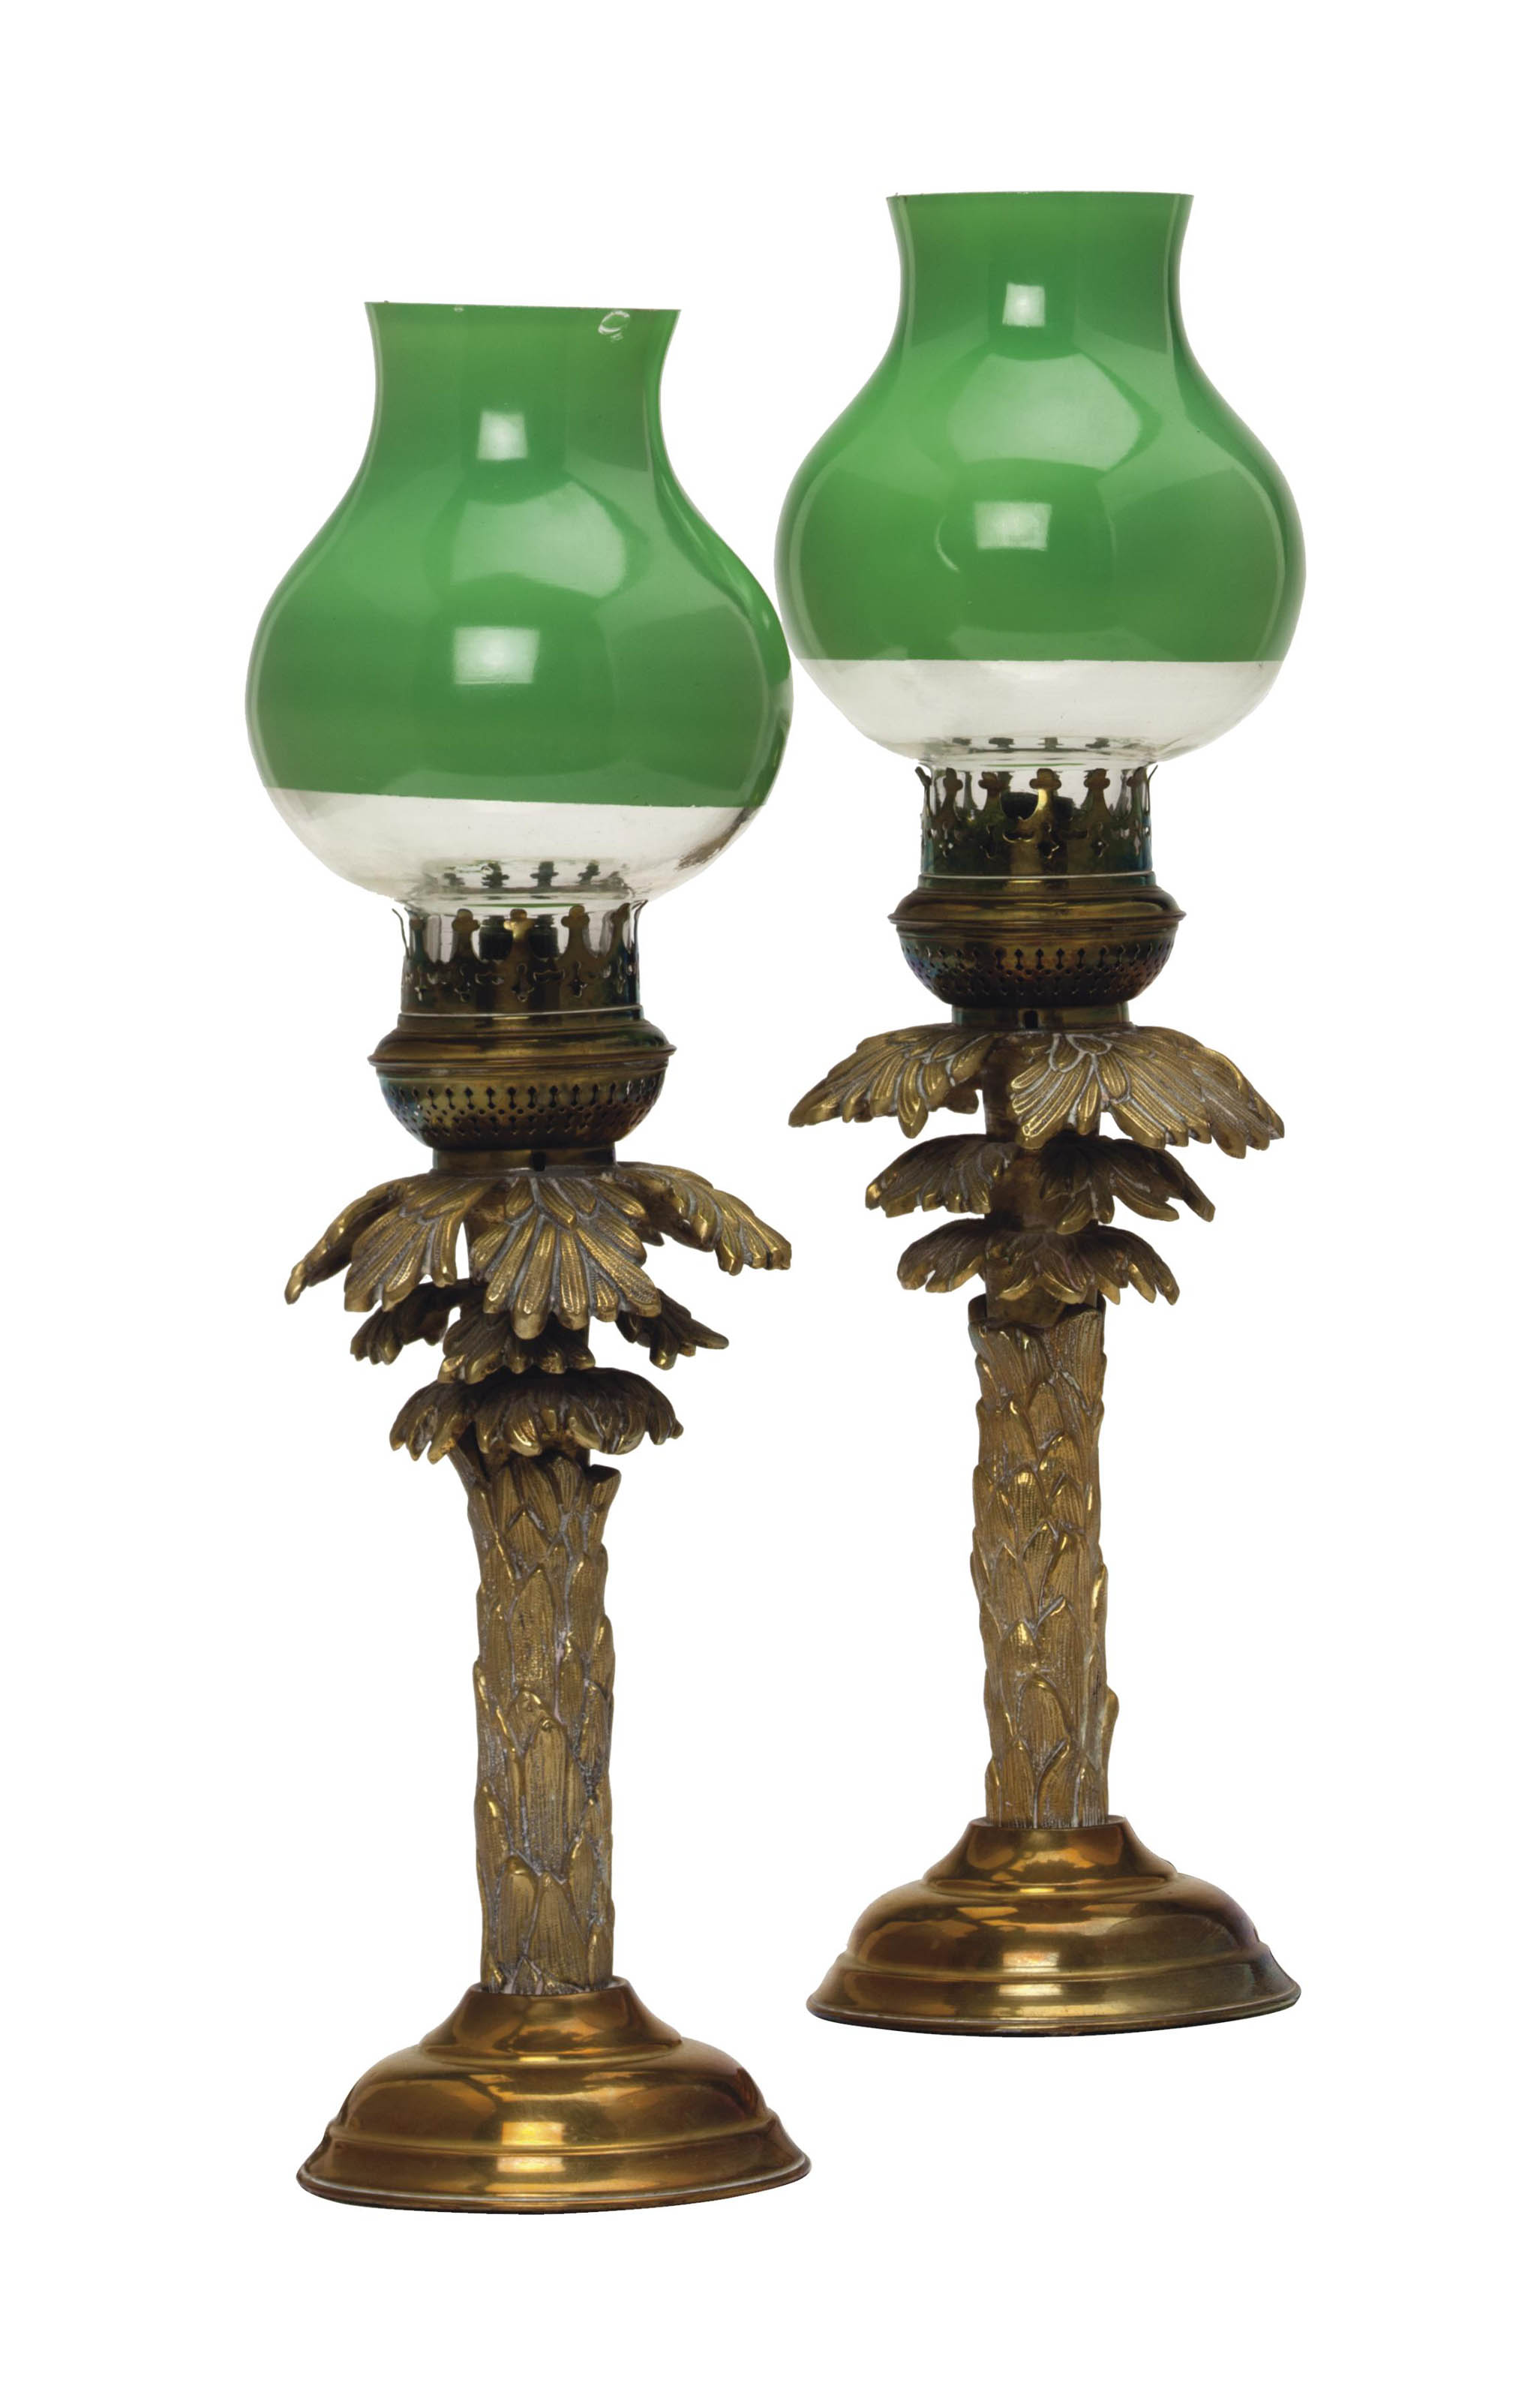 A PAIR OF BRASS PALM TREE-FORM